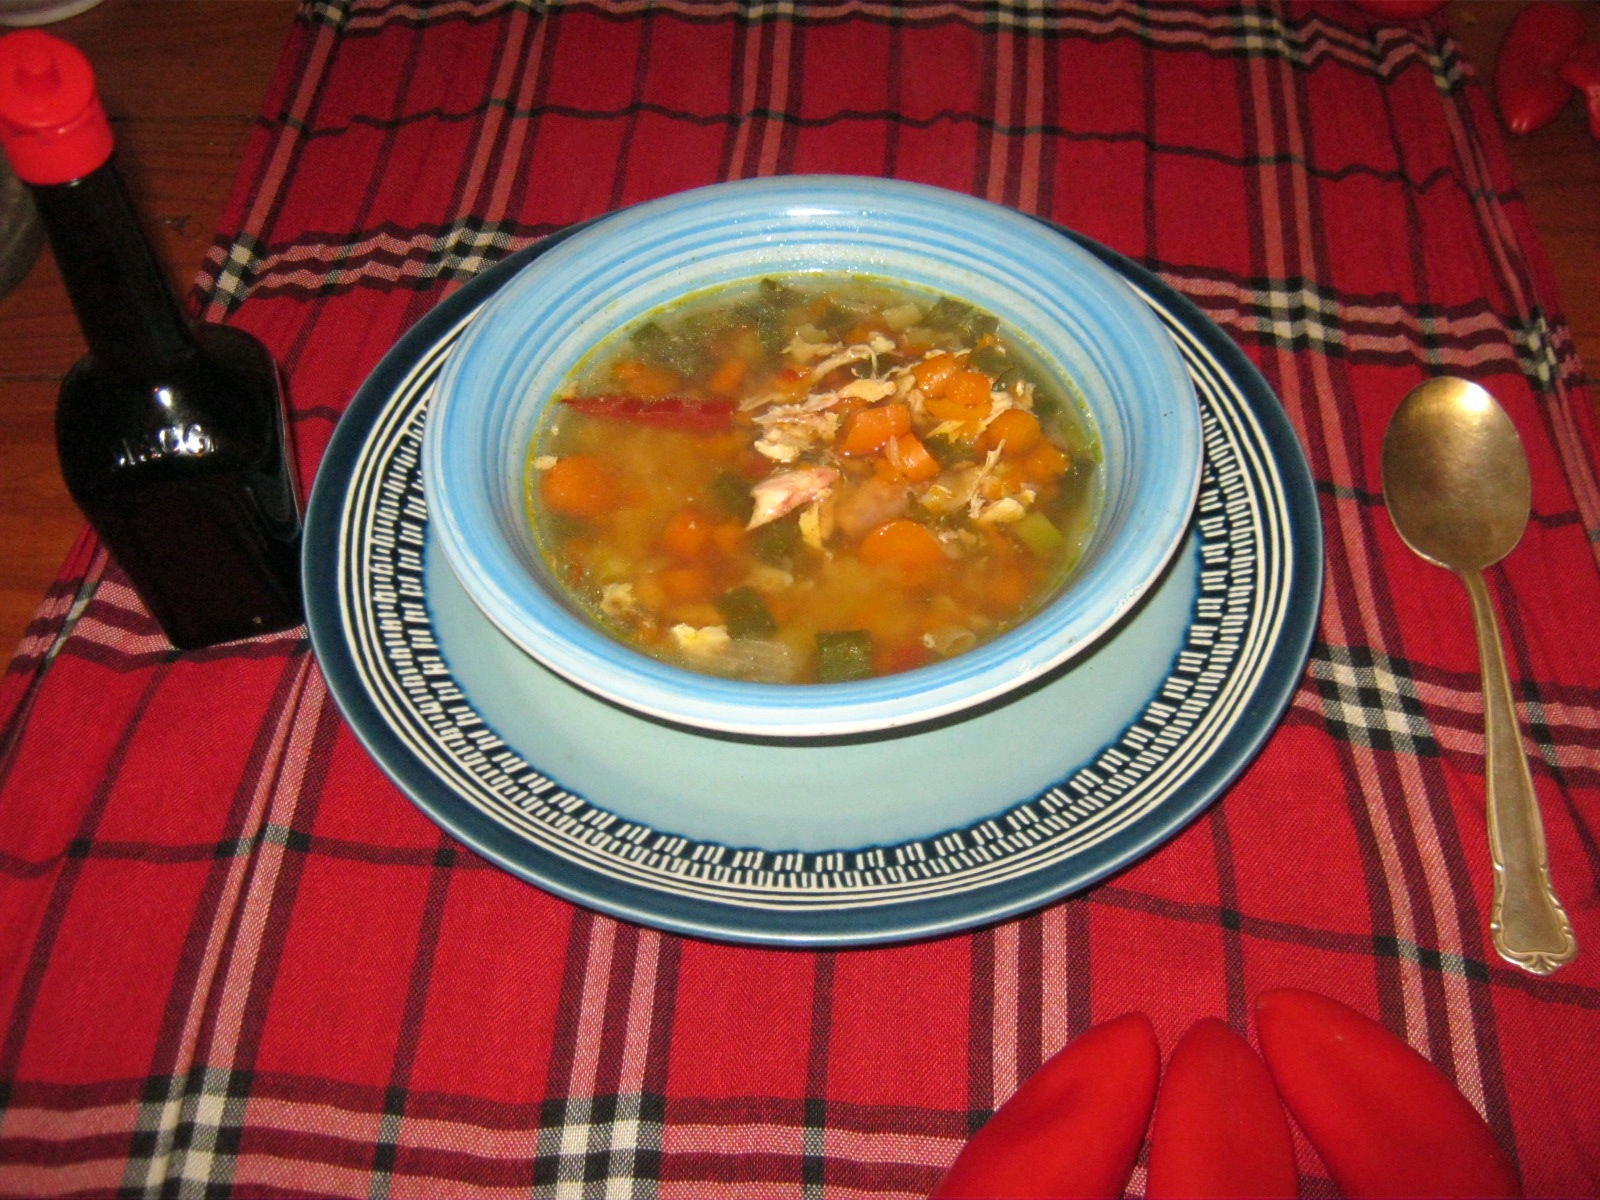 A plate of delicious chicken soup